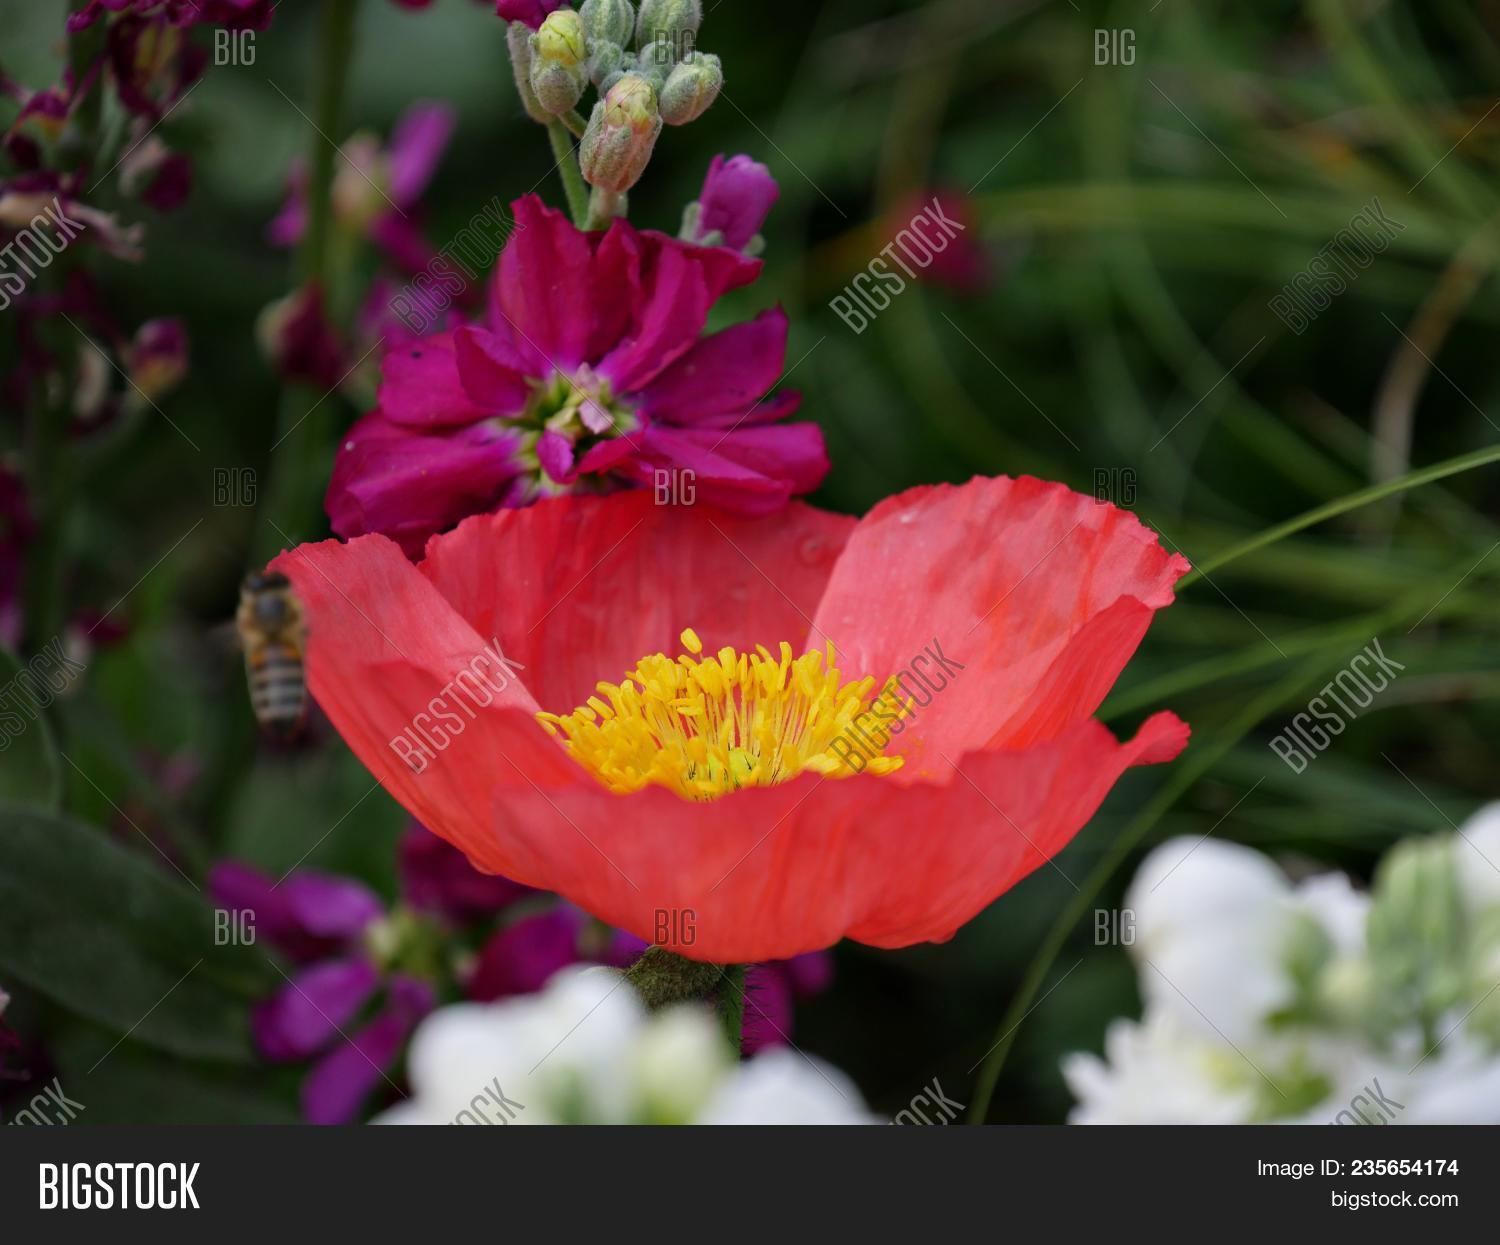 Close red flower image photo free trial bigstock close up of red flower with a yellow center and fuschia pink flowers around mightylinksfo